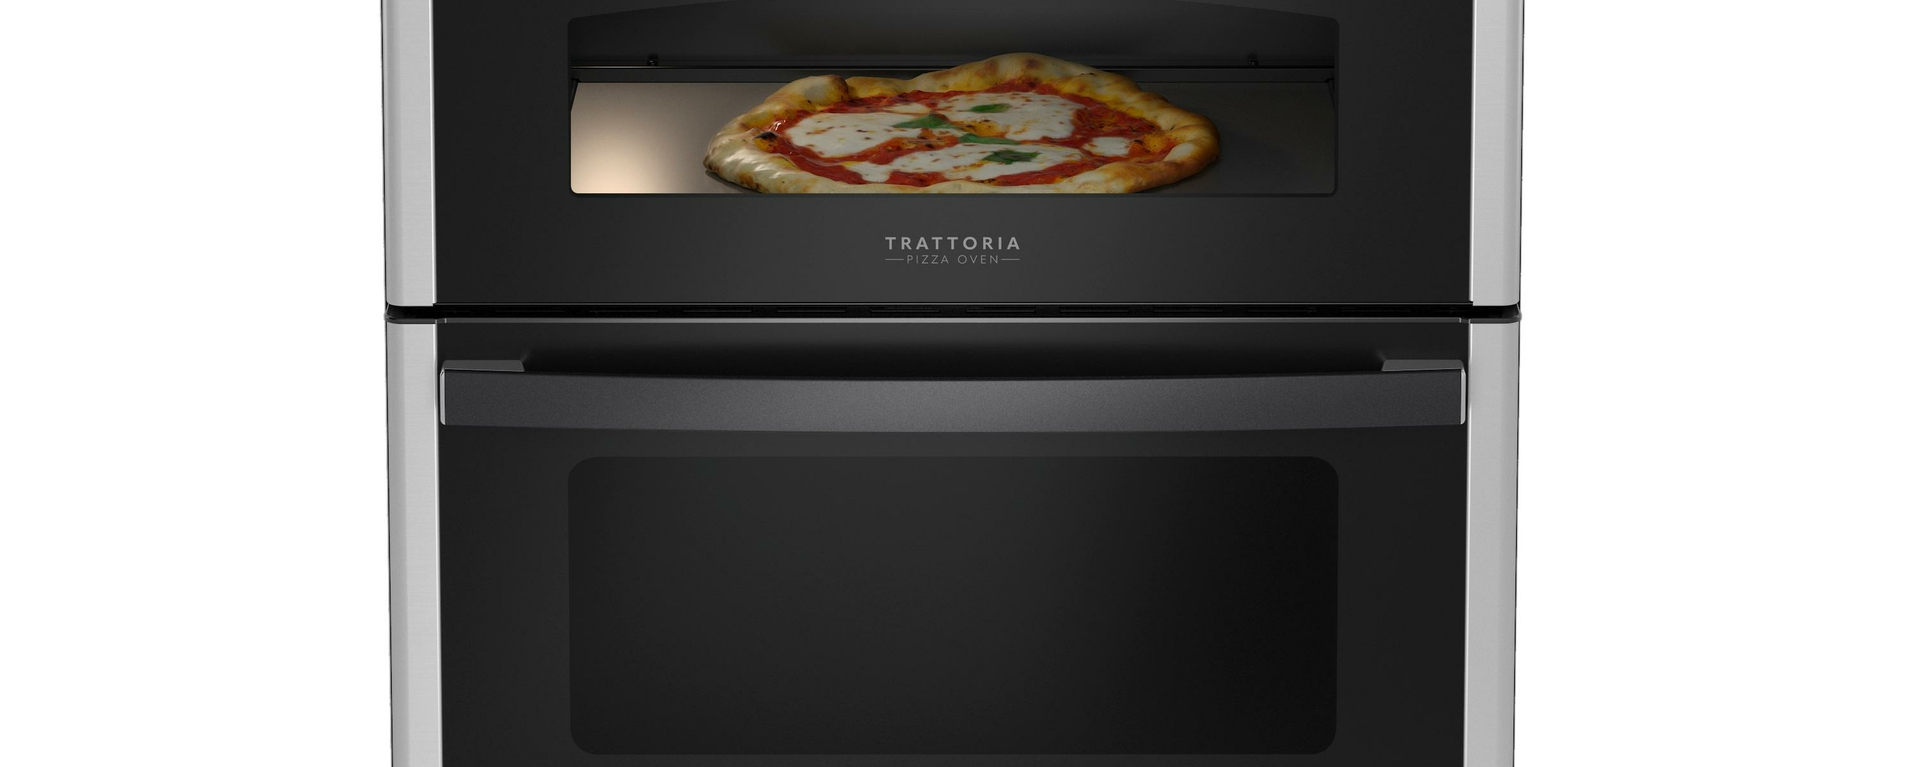 Innovation Studio by GE Profile Introduces Its First Product...the Trattoria Pizza Oven